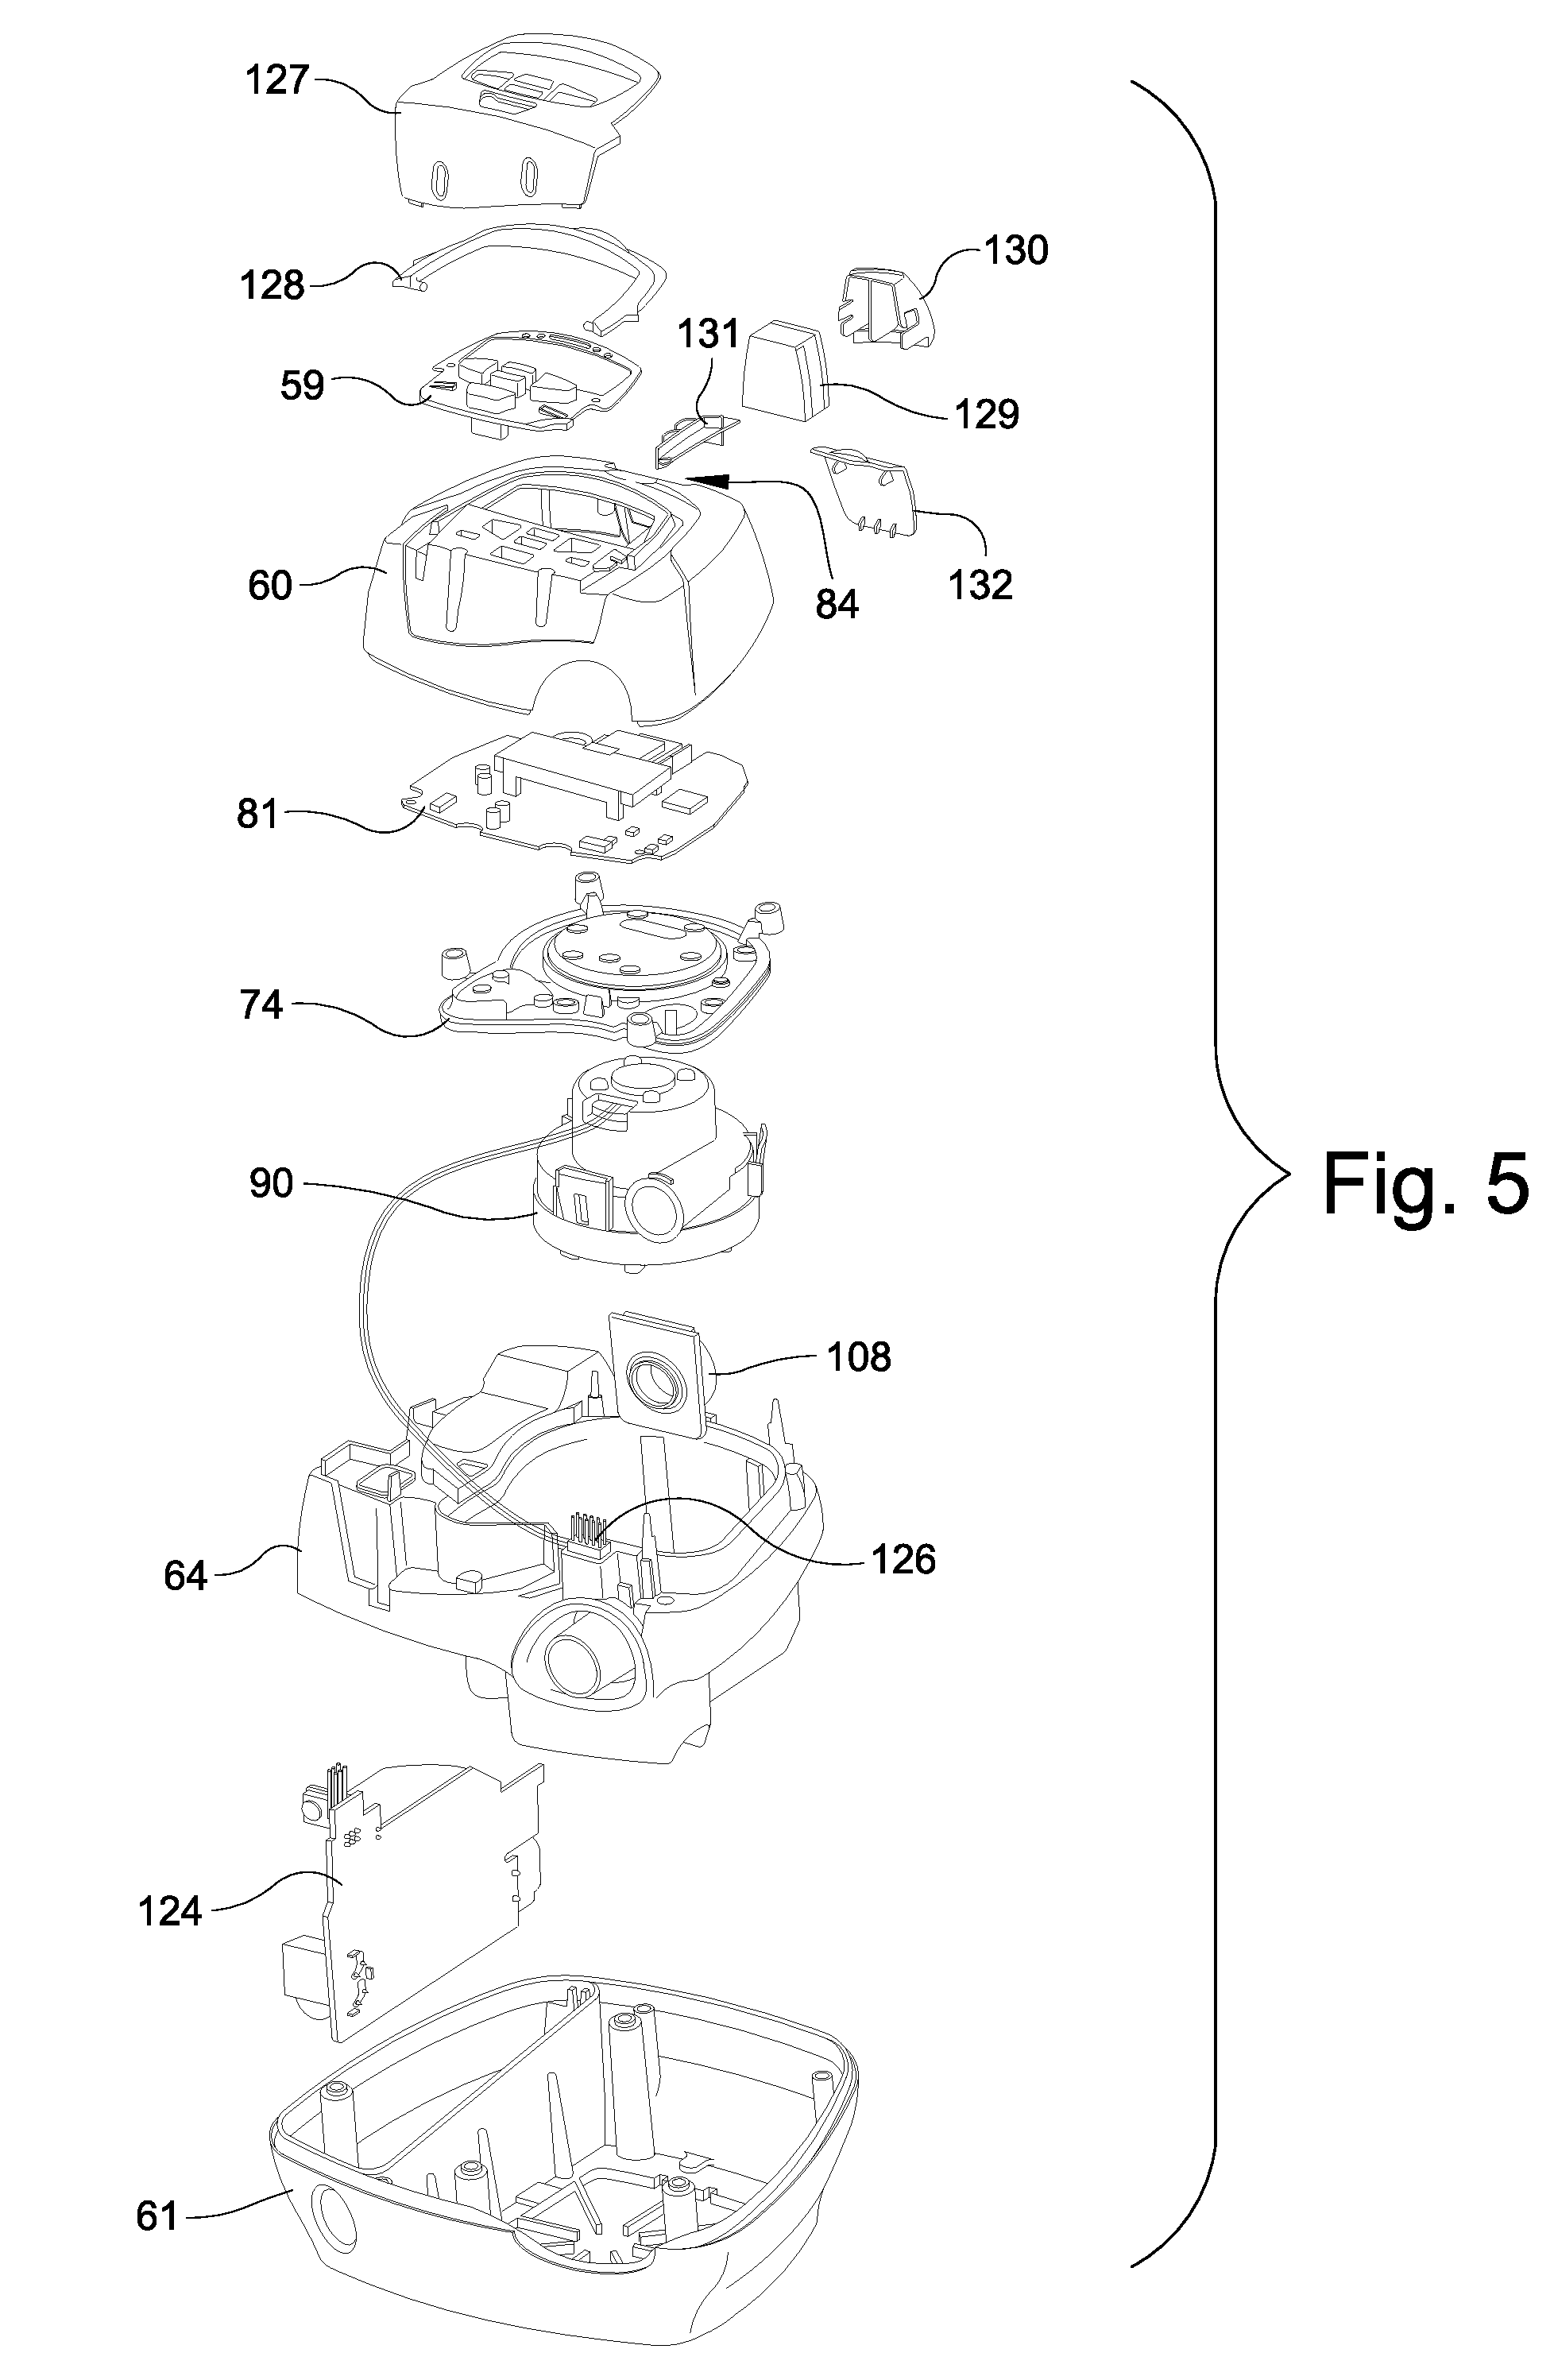 patent us 8,006,691 b2Sunbeam Heating Pad Wiring Diagram Further Fisher And Paykel Cpap #12